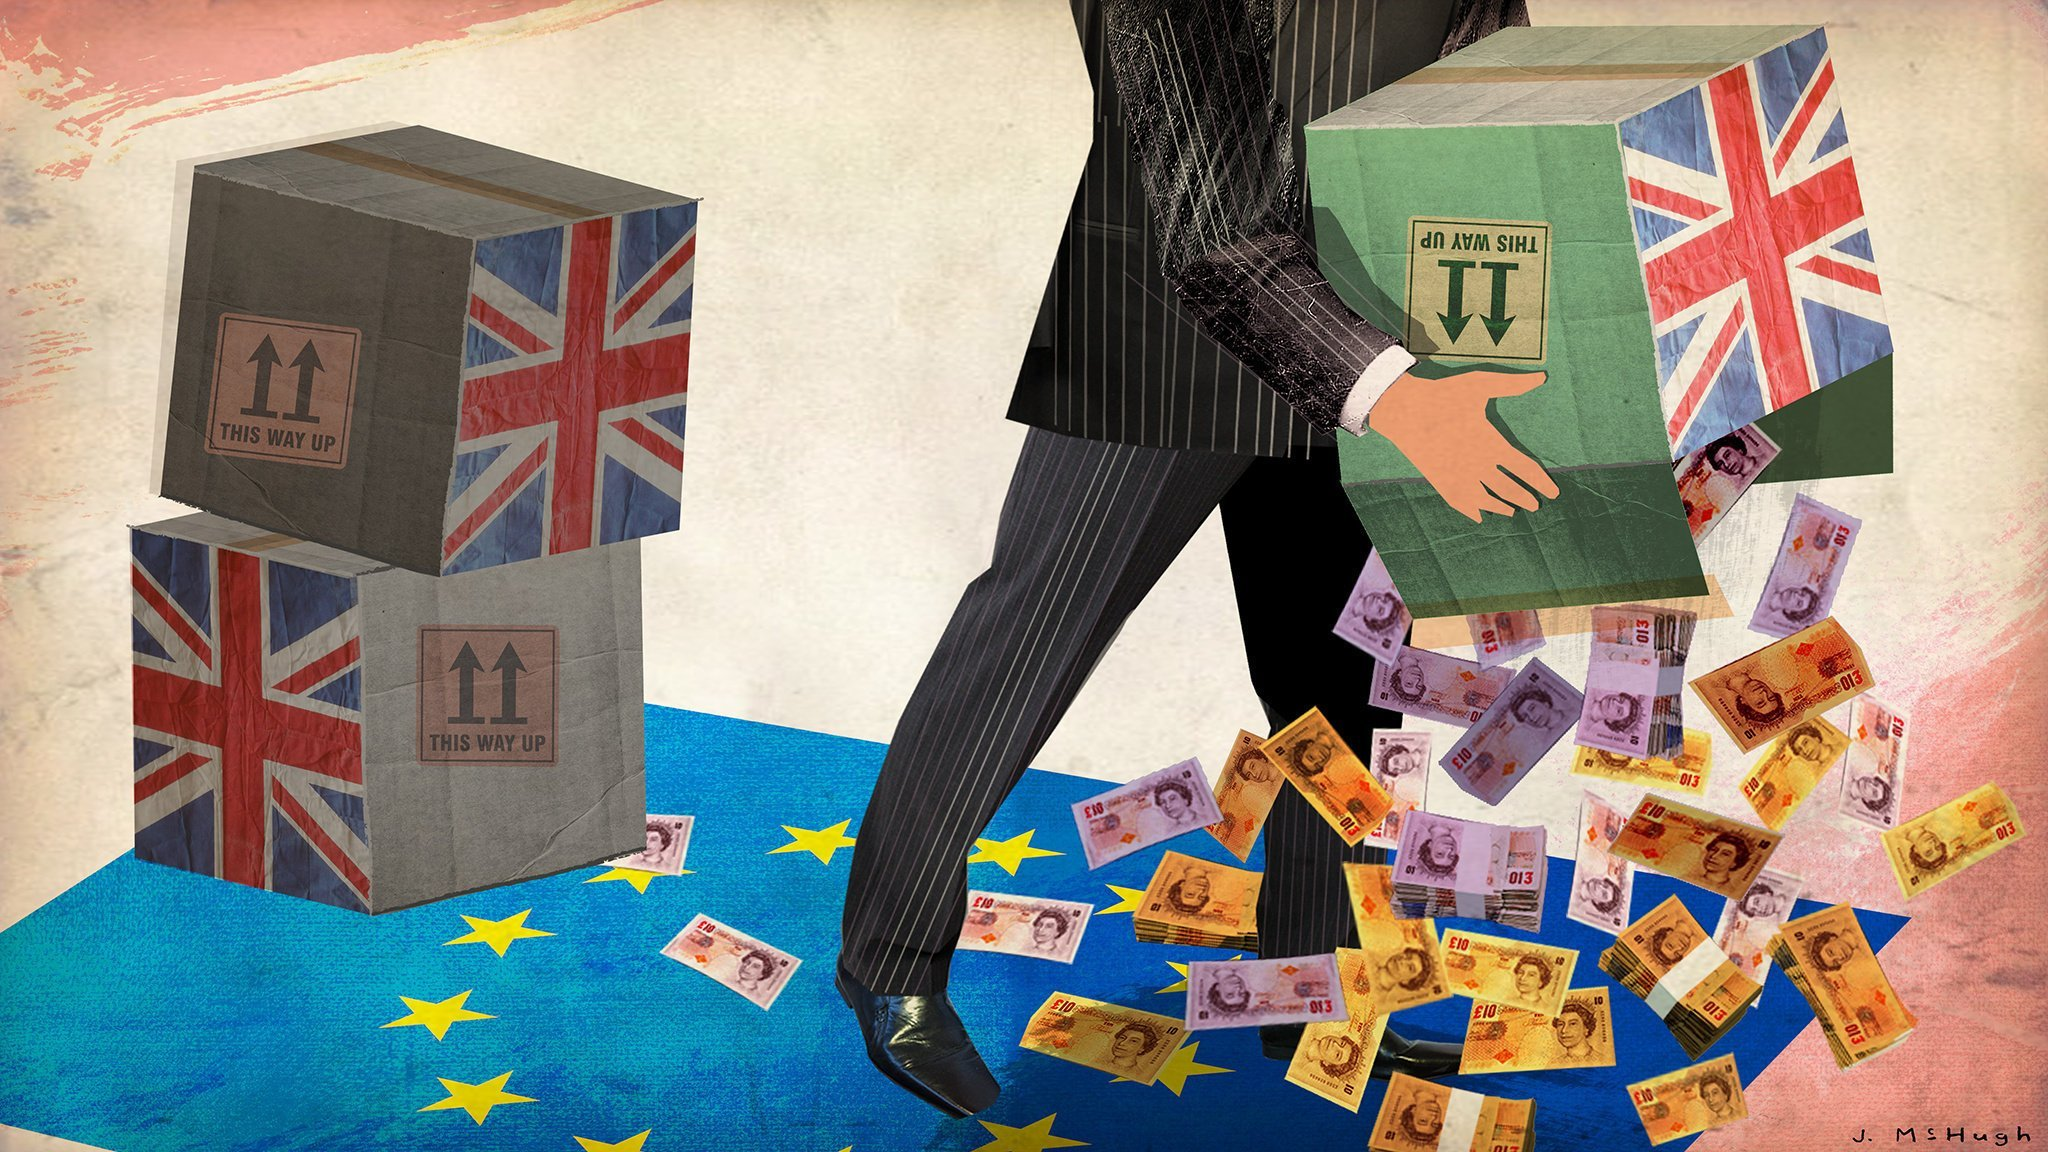 Europe holds all the cards in the Brexit talks